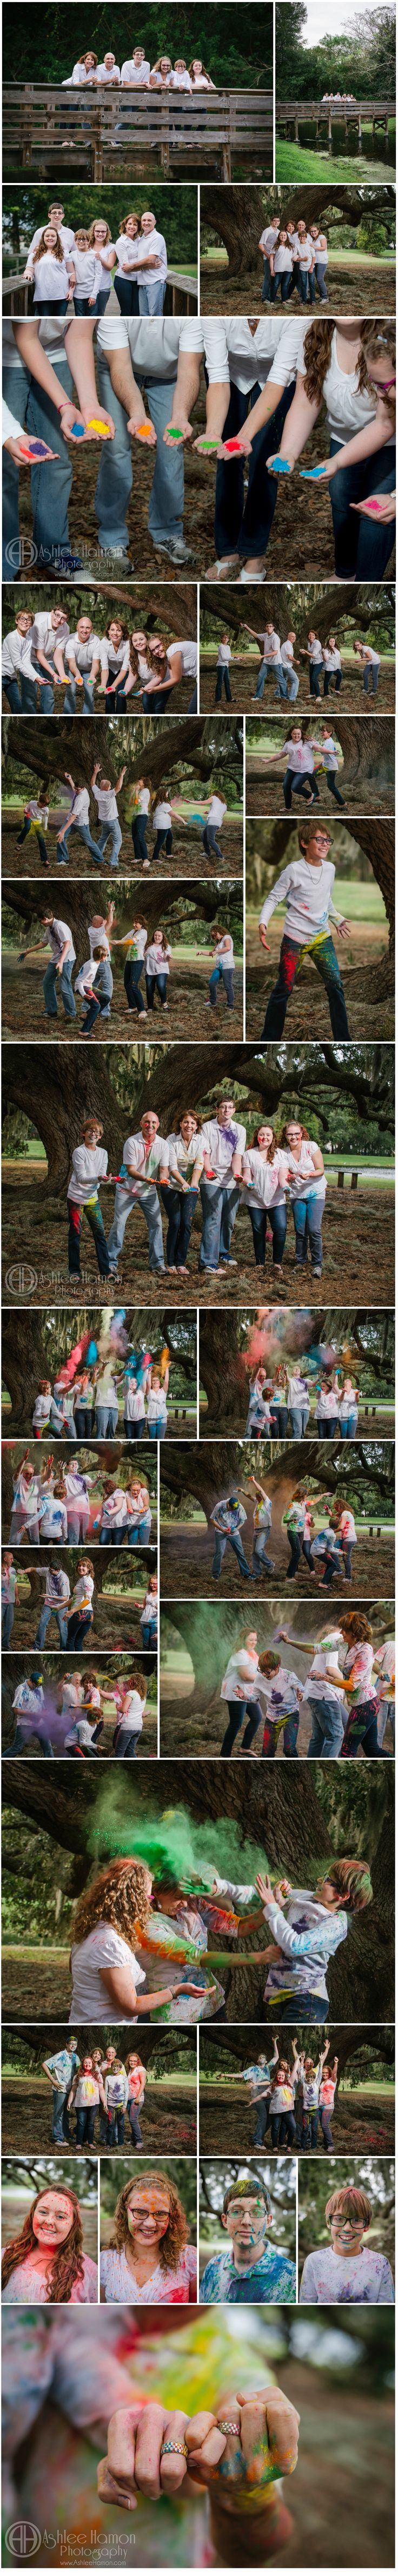 As you can probably tell this is a professional photograph my - Chalk Powder Fight Family Portraits